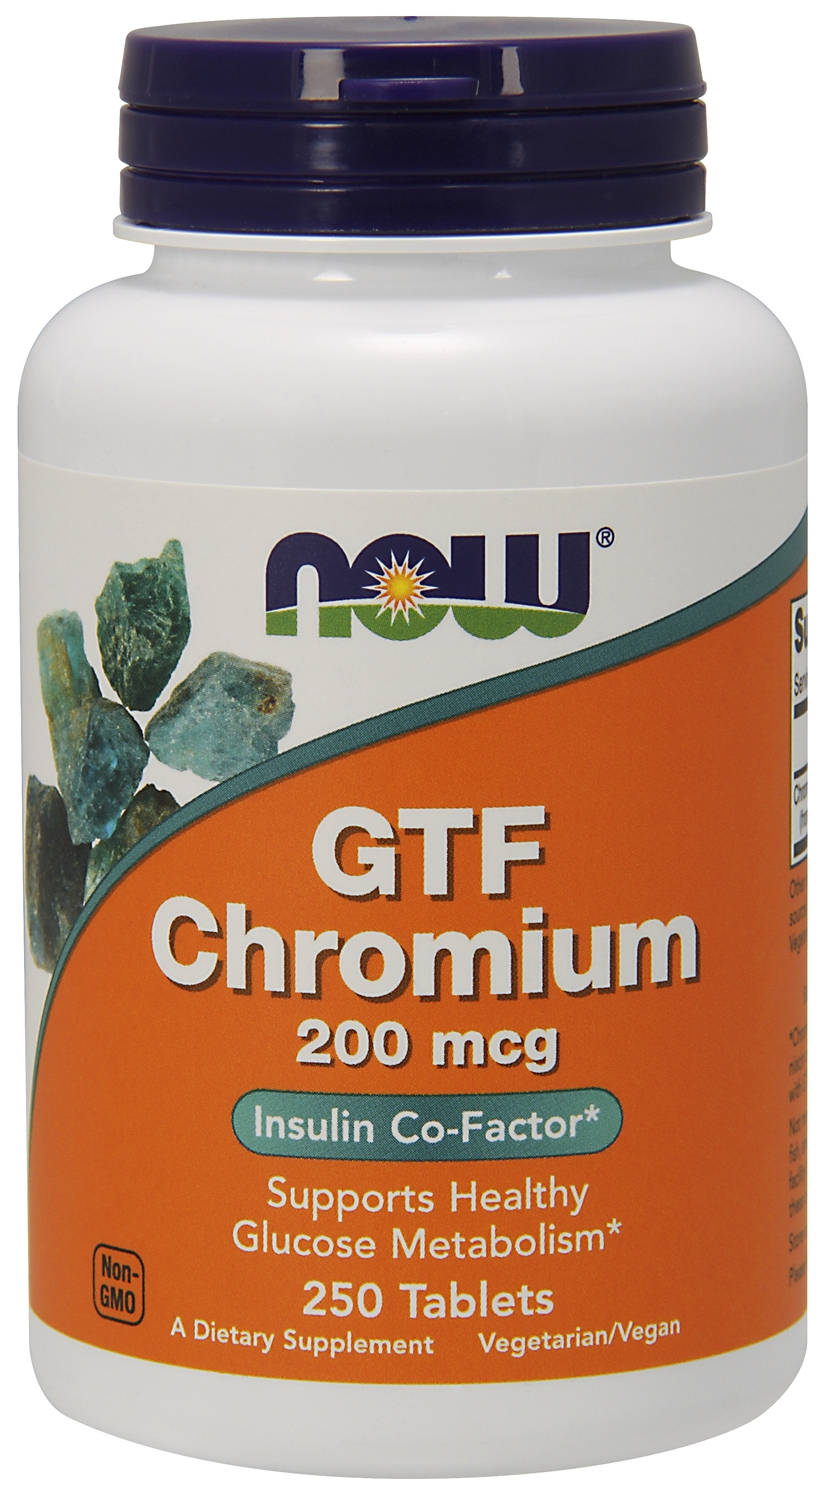 GTF Chromium 200 mcg 250 tabs by NOW